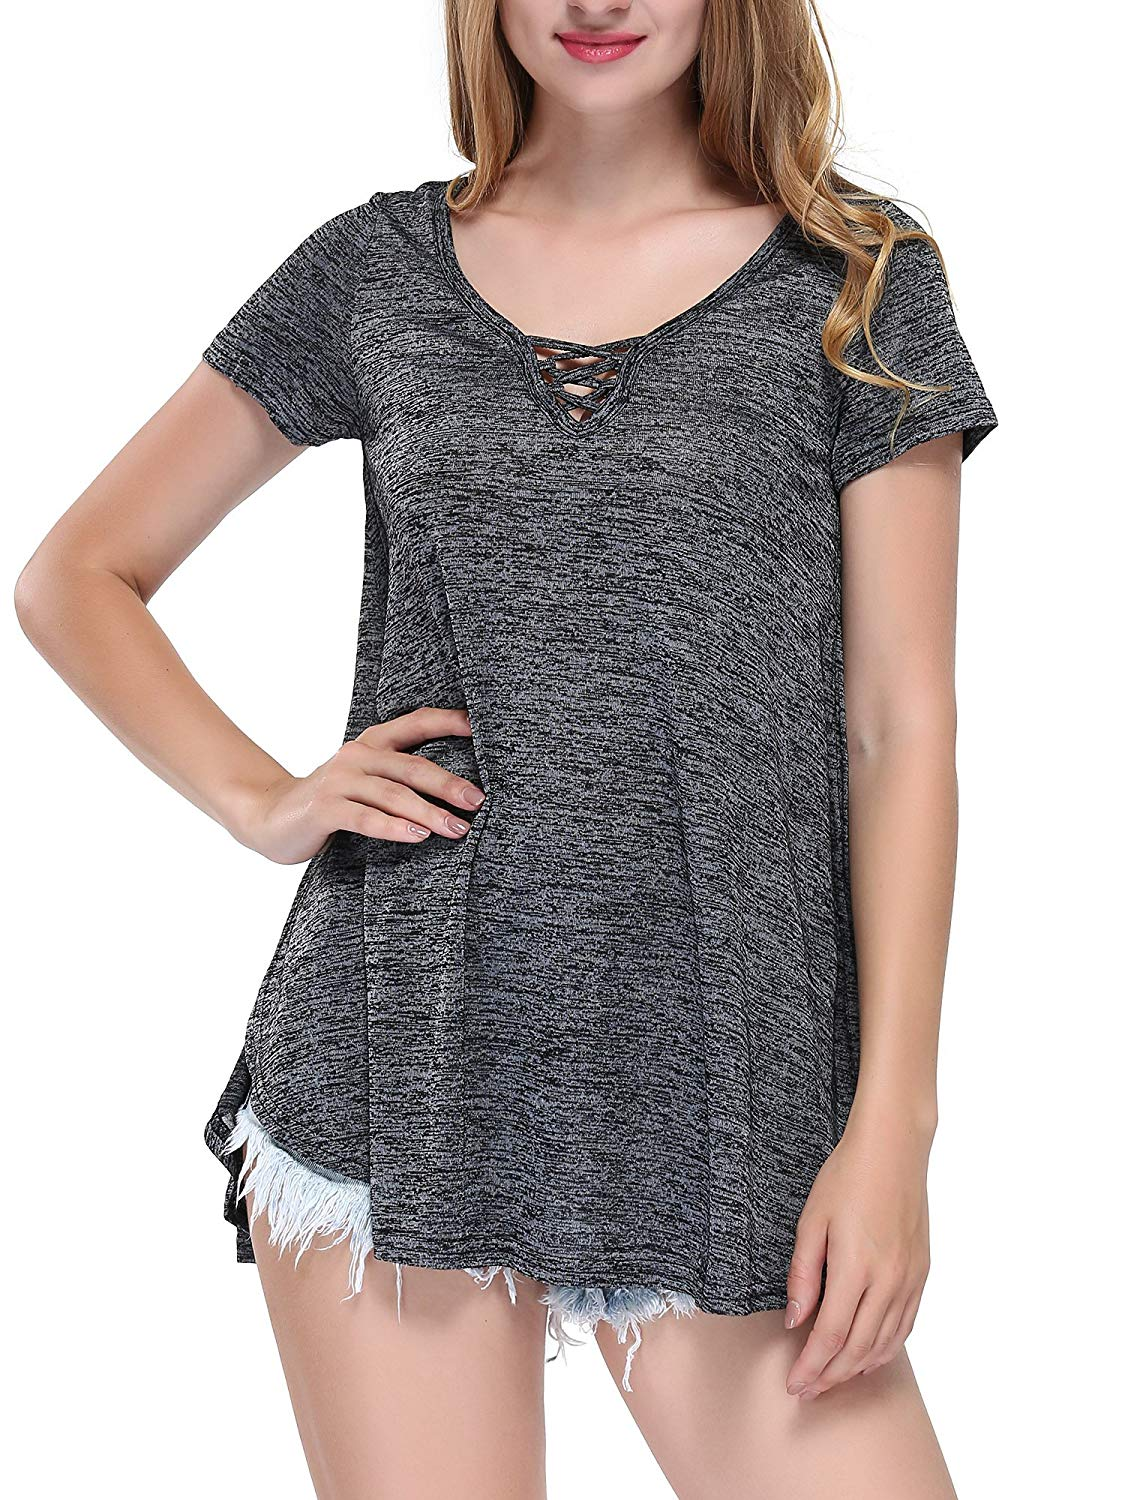 XWB Casual Soft Blouse Cross V Neck T-Shirts Short Sleeve Loose Fit Tunic Tops